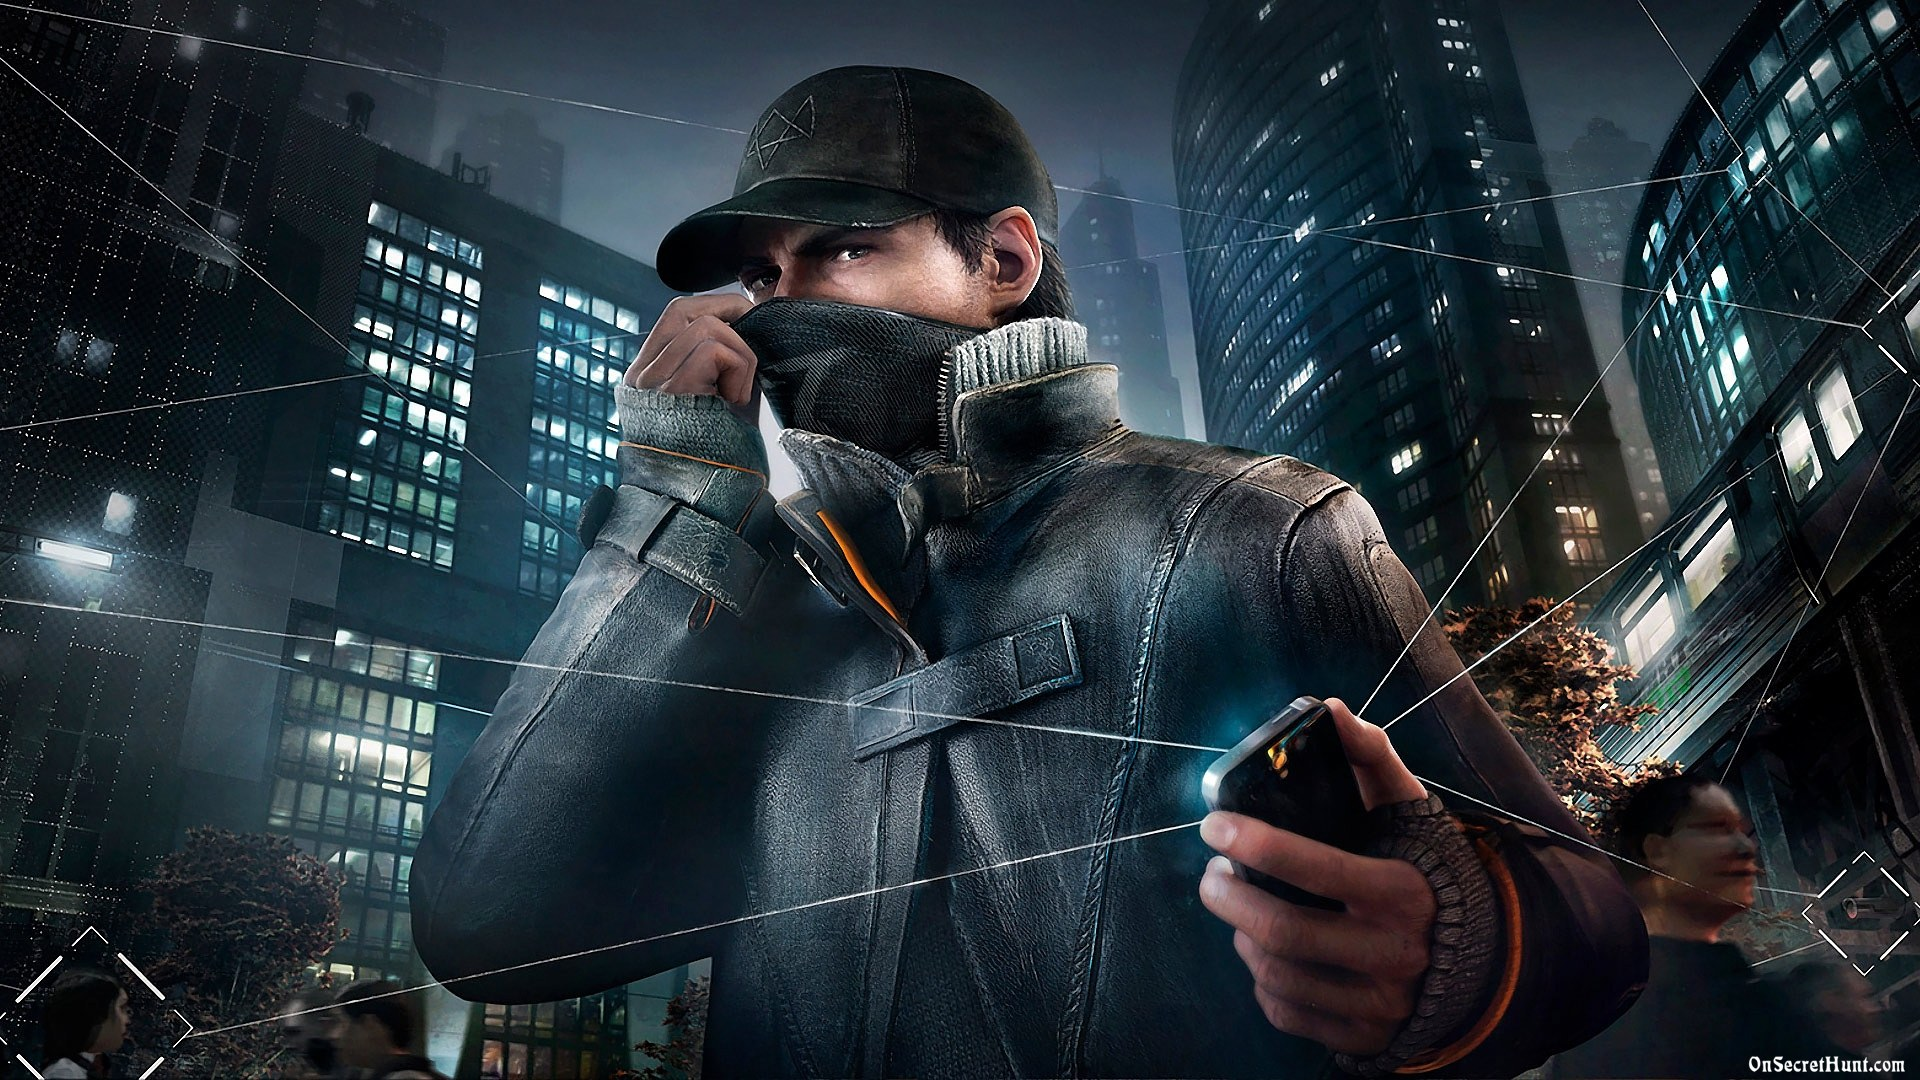 Aiden Pearce Watch Dogs WallpaperImagesPicturesPhotosHD Wallpapers 1920x1080